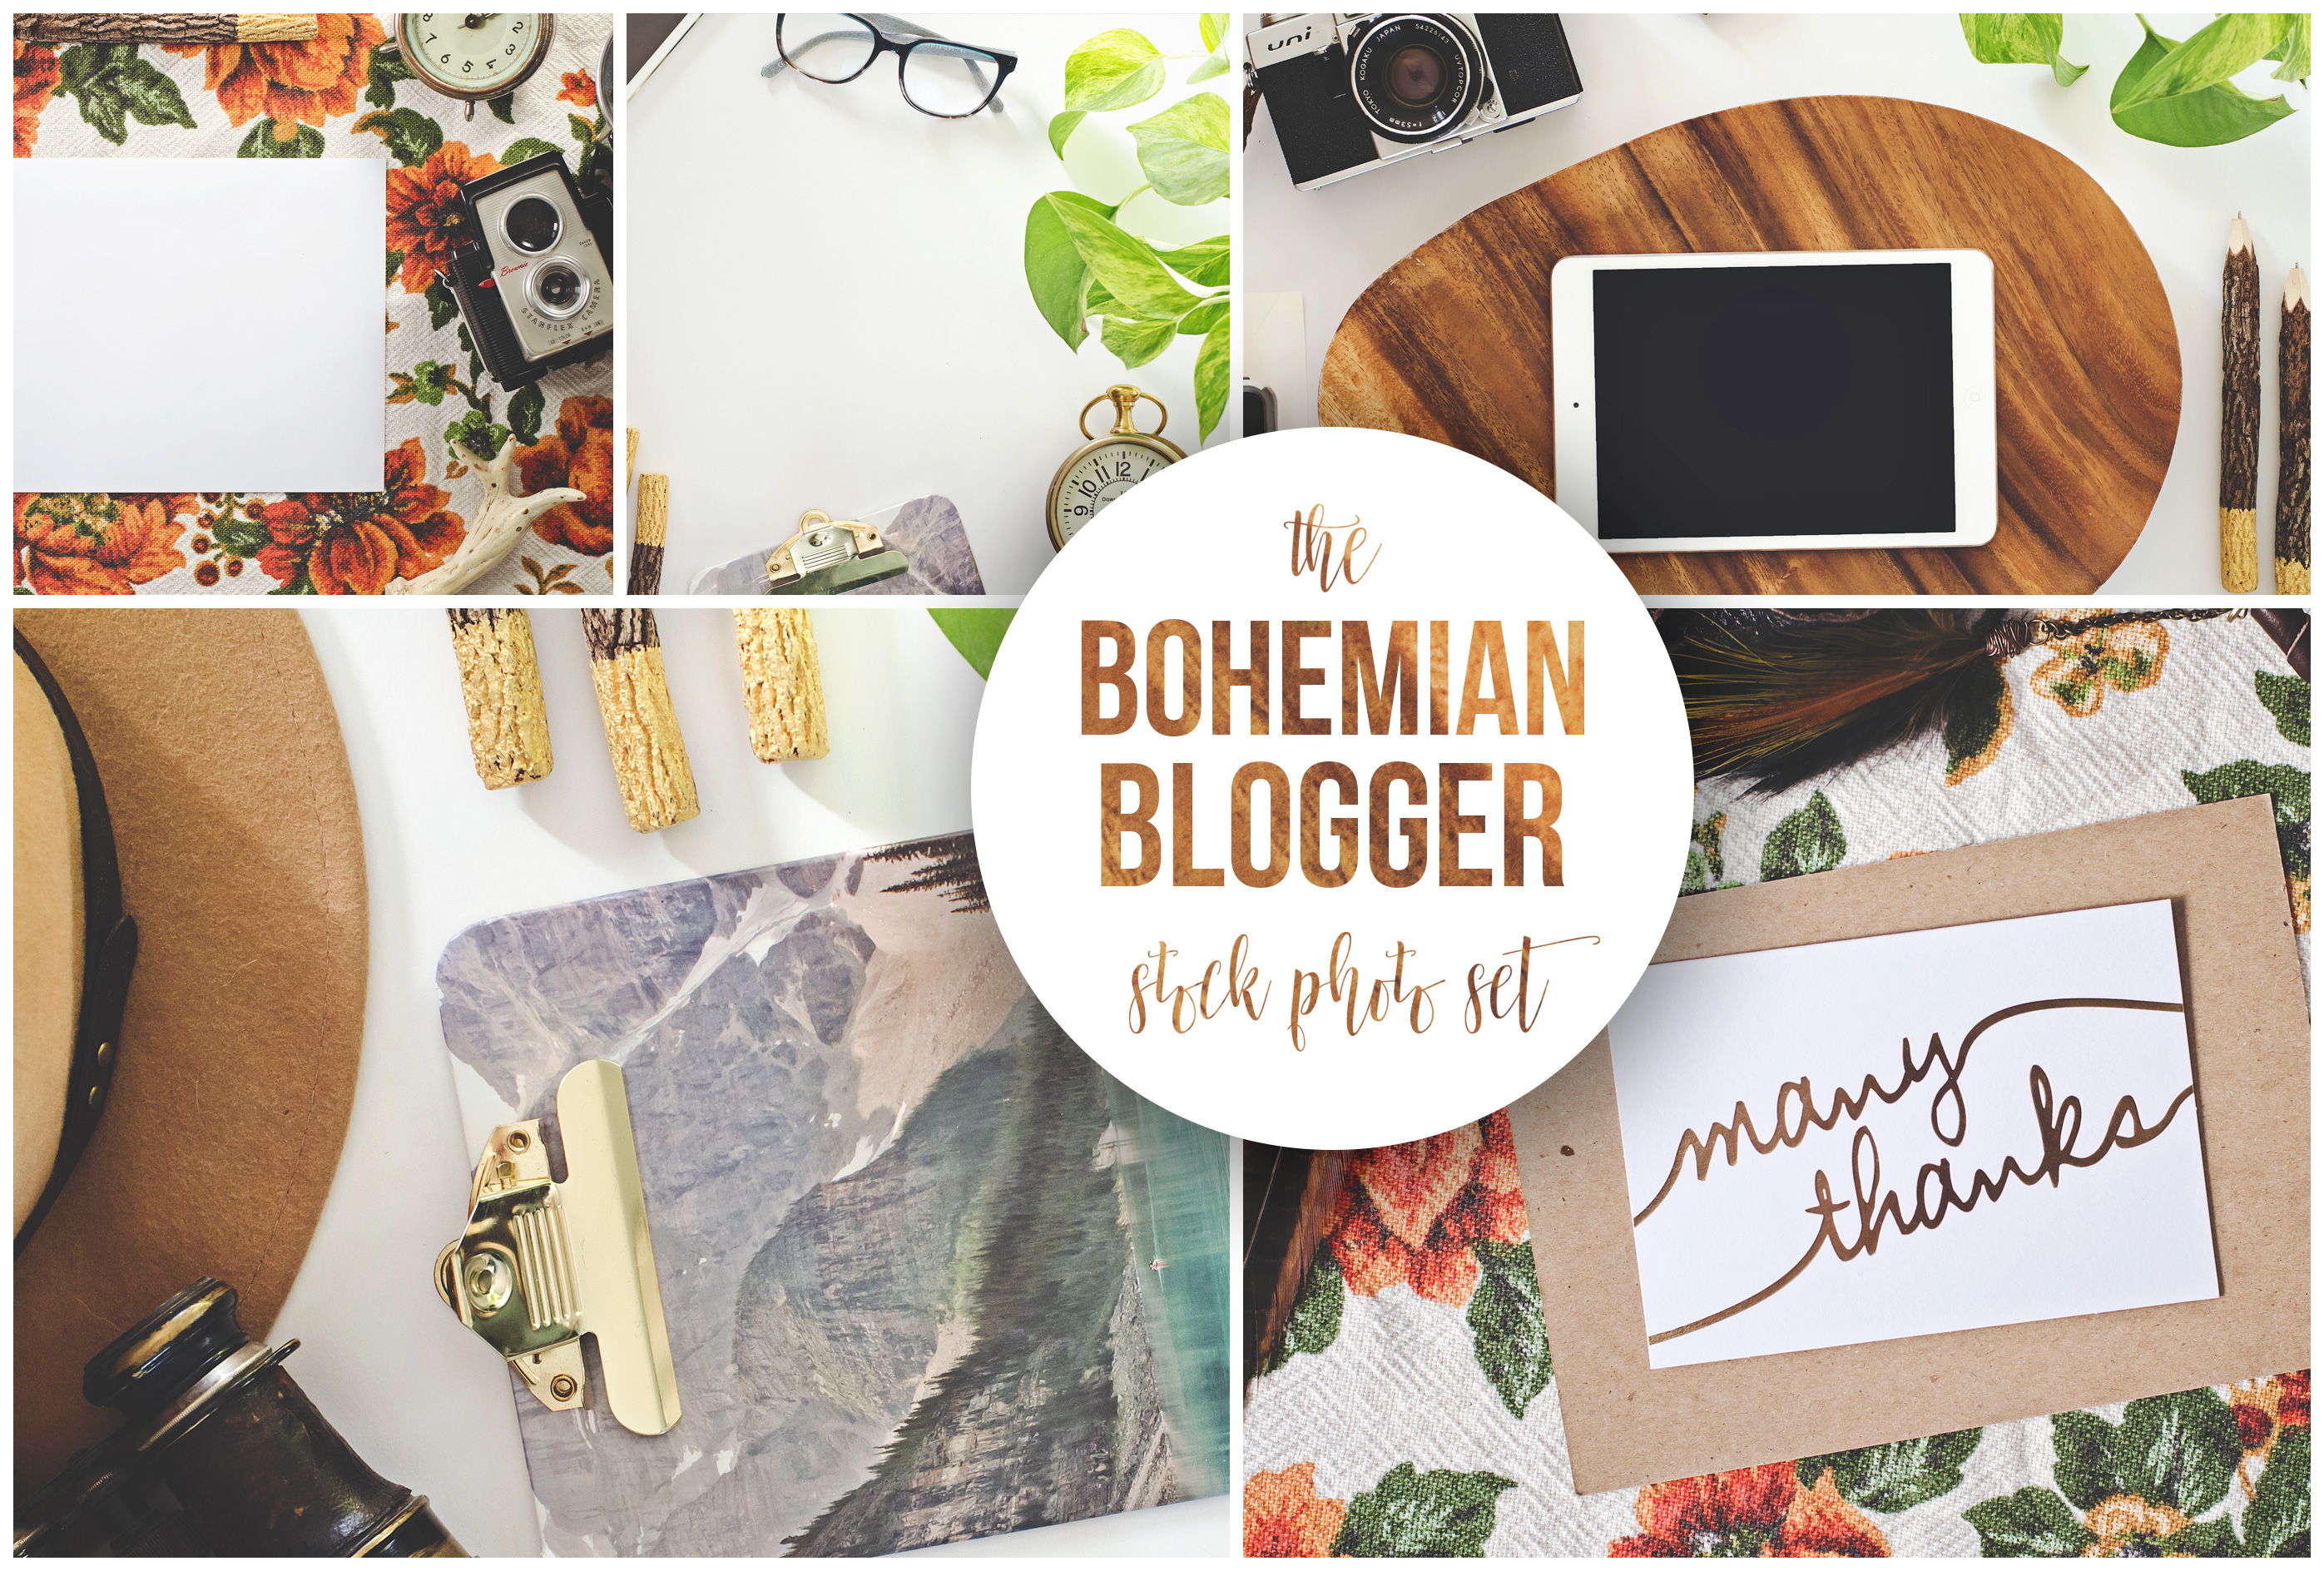 The Bohemian Blogger Stock Photography example image 6